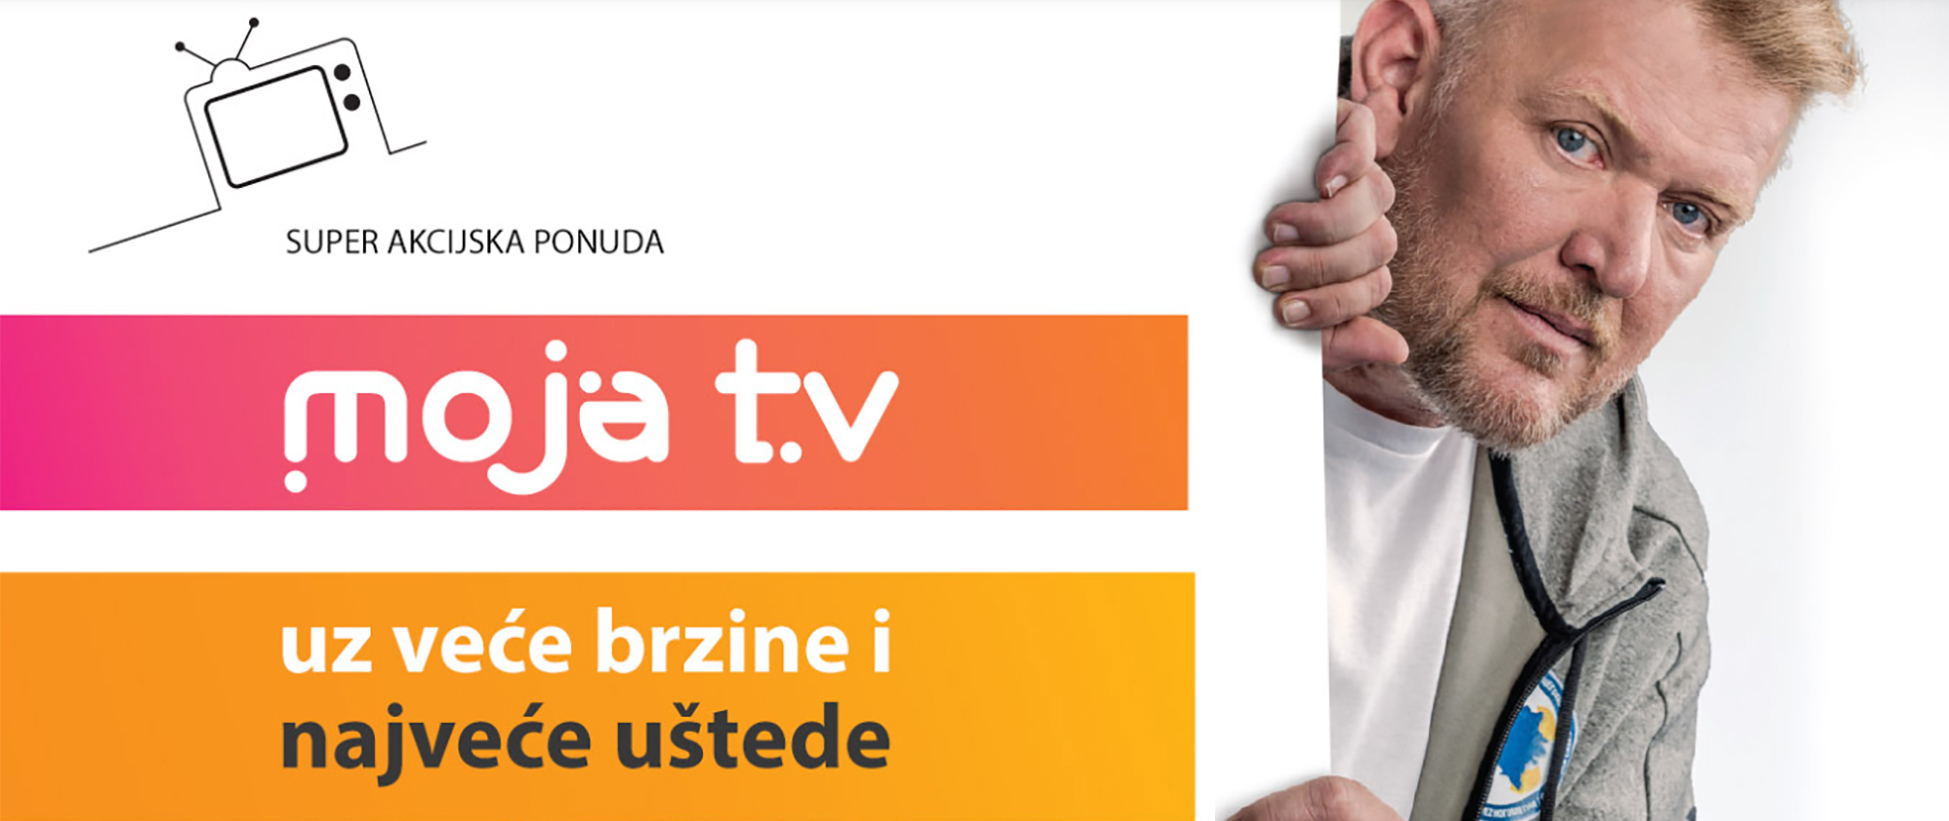 SUPER AKCIJSKA MOJA TV PONUDA OD 15. MARTA DO 13. MAJA